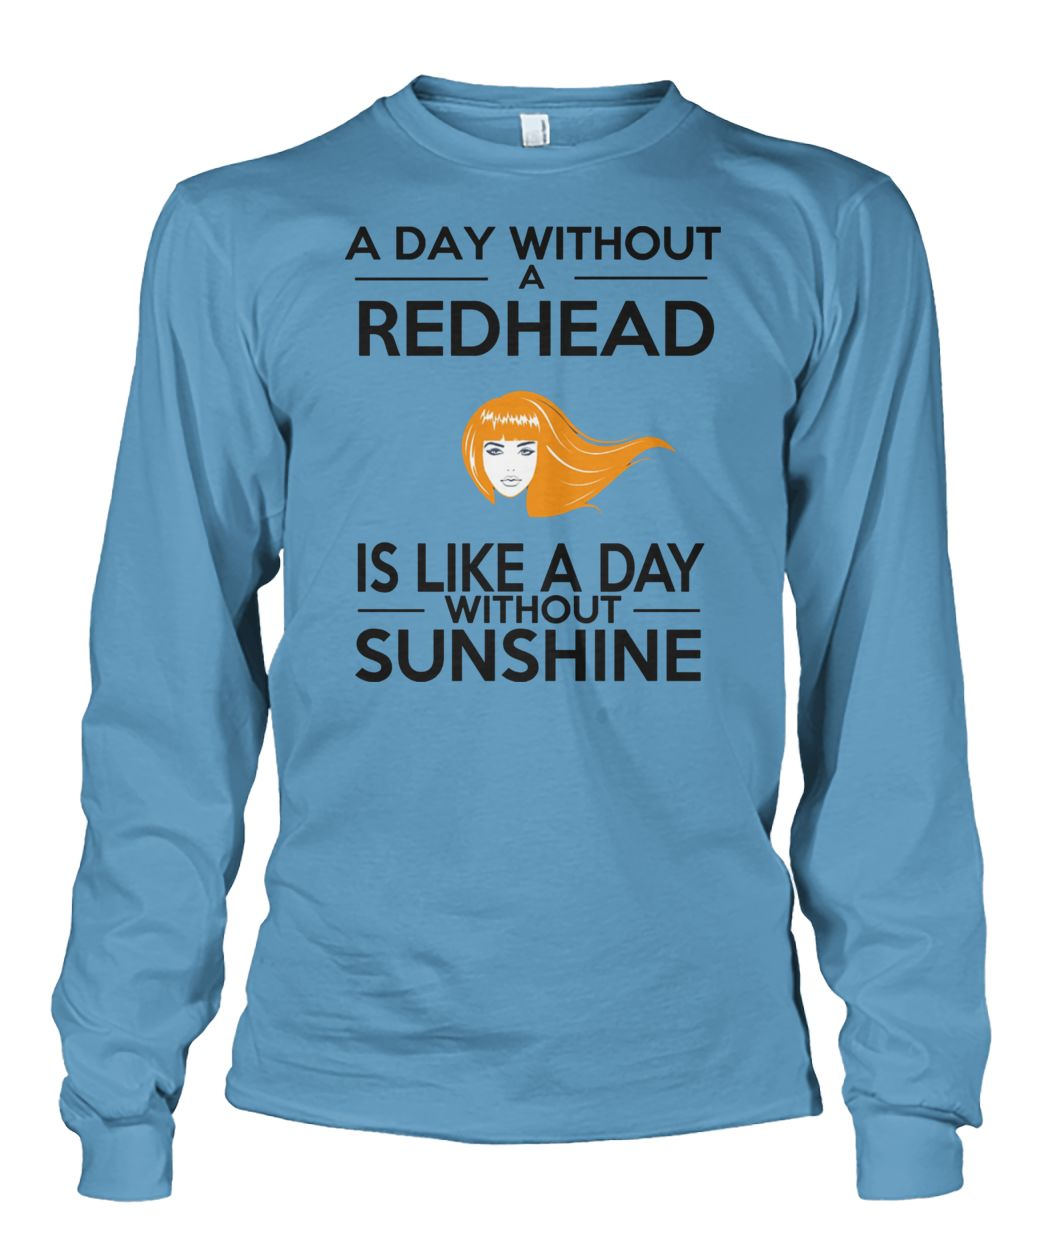 A day without a redhead is like a day without sunshine unisex long sleeve